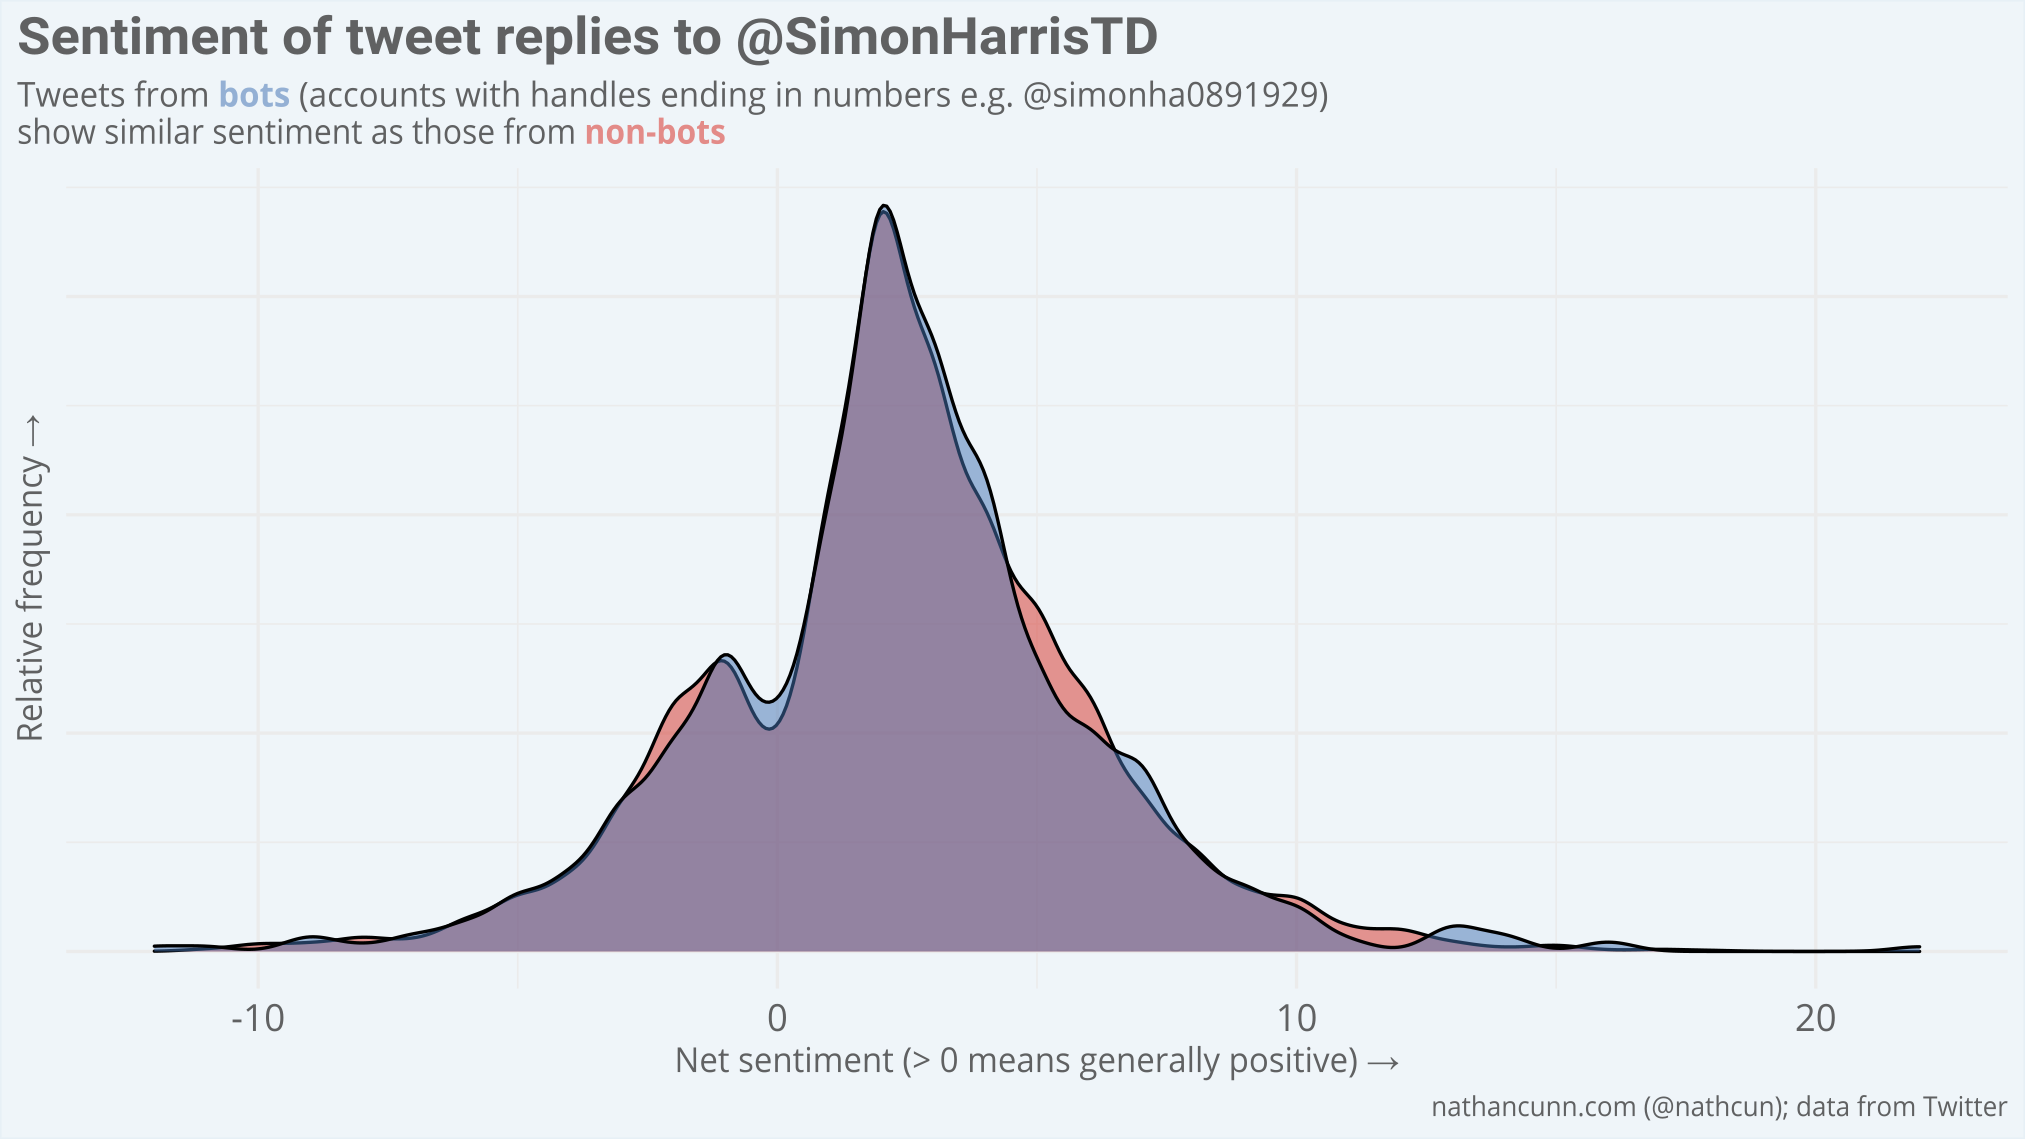 A density plot of the sentiment score of tweet replies to @SimonHarrisTD broken down by supposed bots and non-bots where bots are identified by having formulaic Twitter handles. No difference is observed between the two groups.